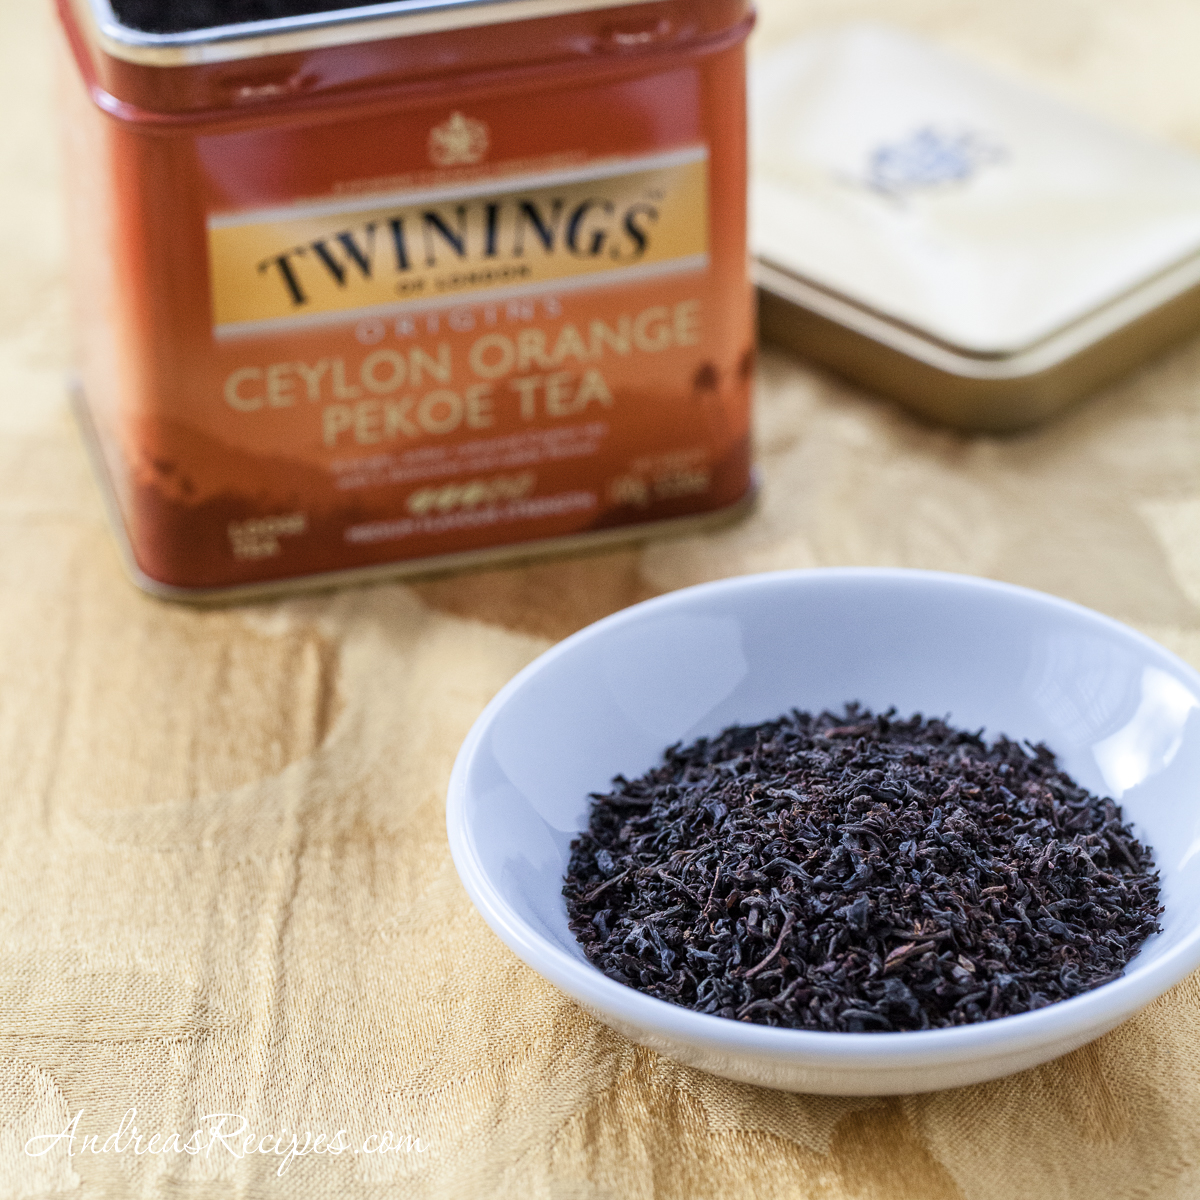 Twinings Ceylon Orange Pekoe Tea leaves and tin - Andrea Meyers